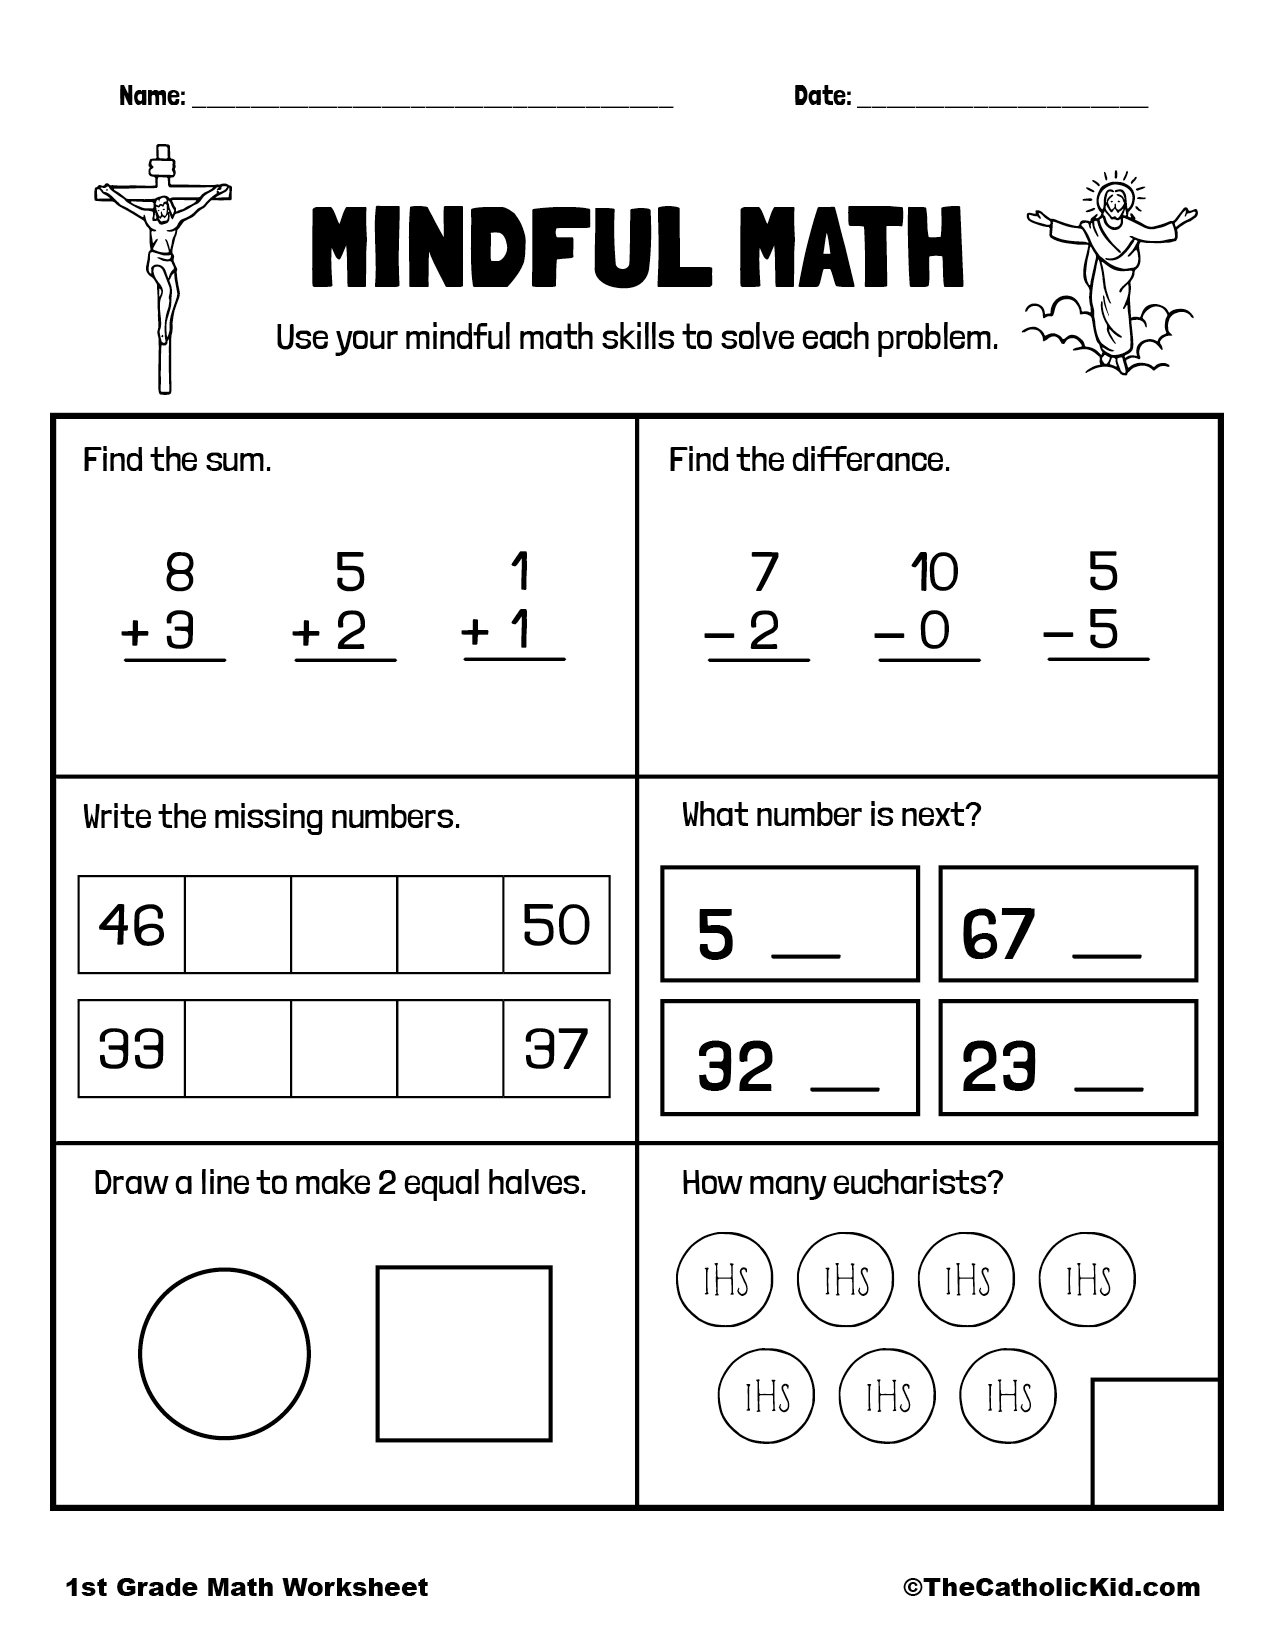 Math Review Page - 1st Grade Math Worksheet Catholic